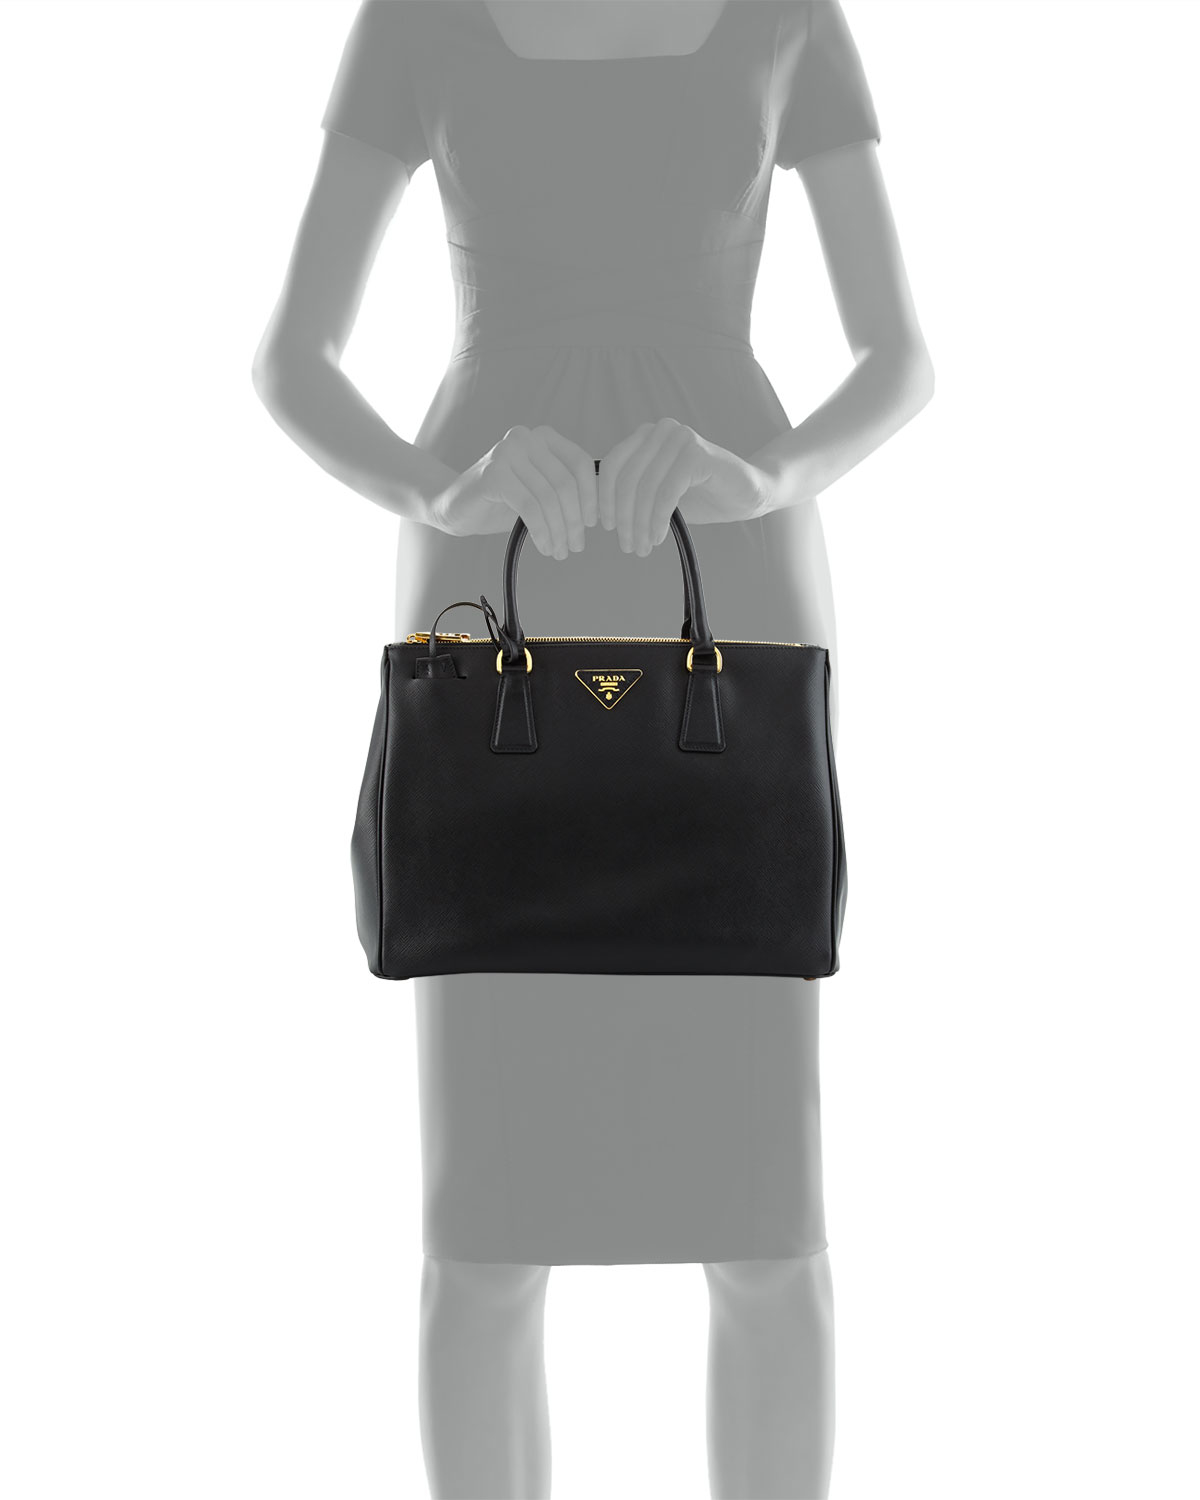 3aa5d20146f1 Lyst - Prada Saffiano Executive Tote Bag in Black